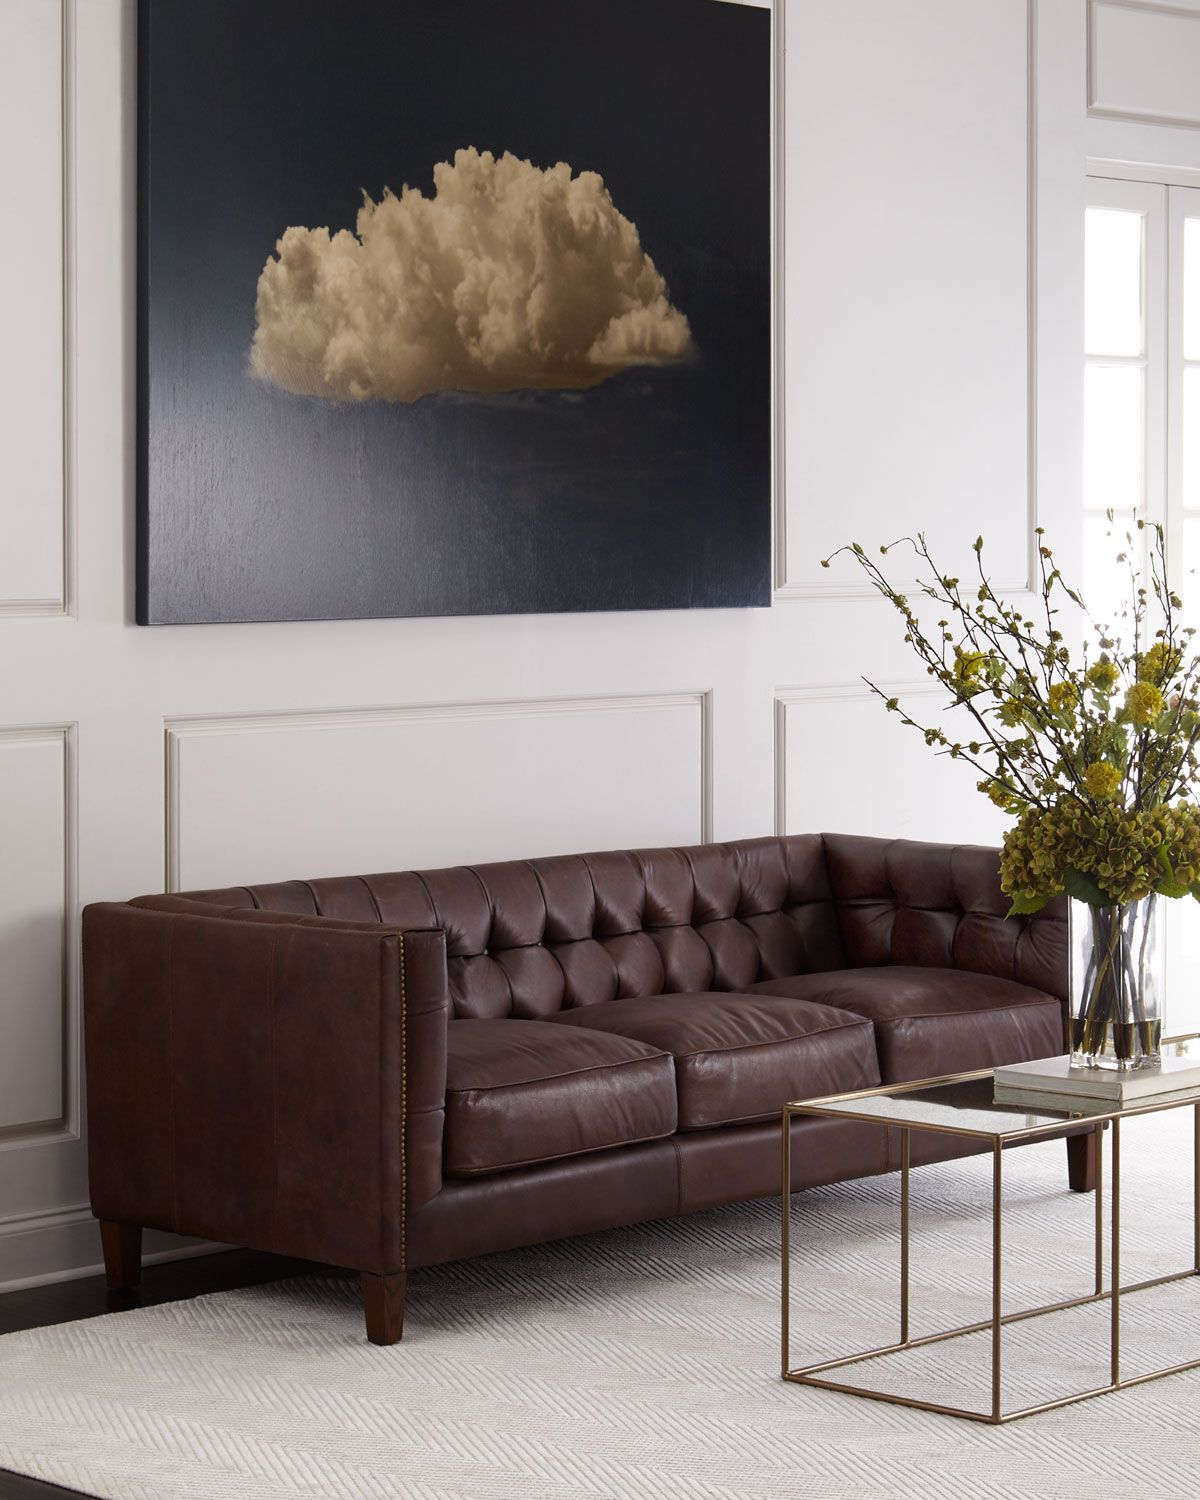 Awesome Sable Tufted Leather Sofa Make A Statement Scene Stealing Beatyapartments Chair Design Images Beatyapartmentscom